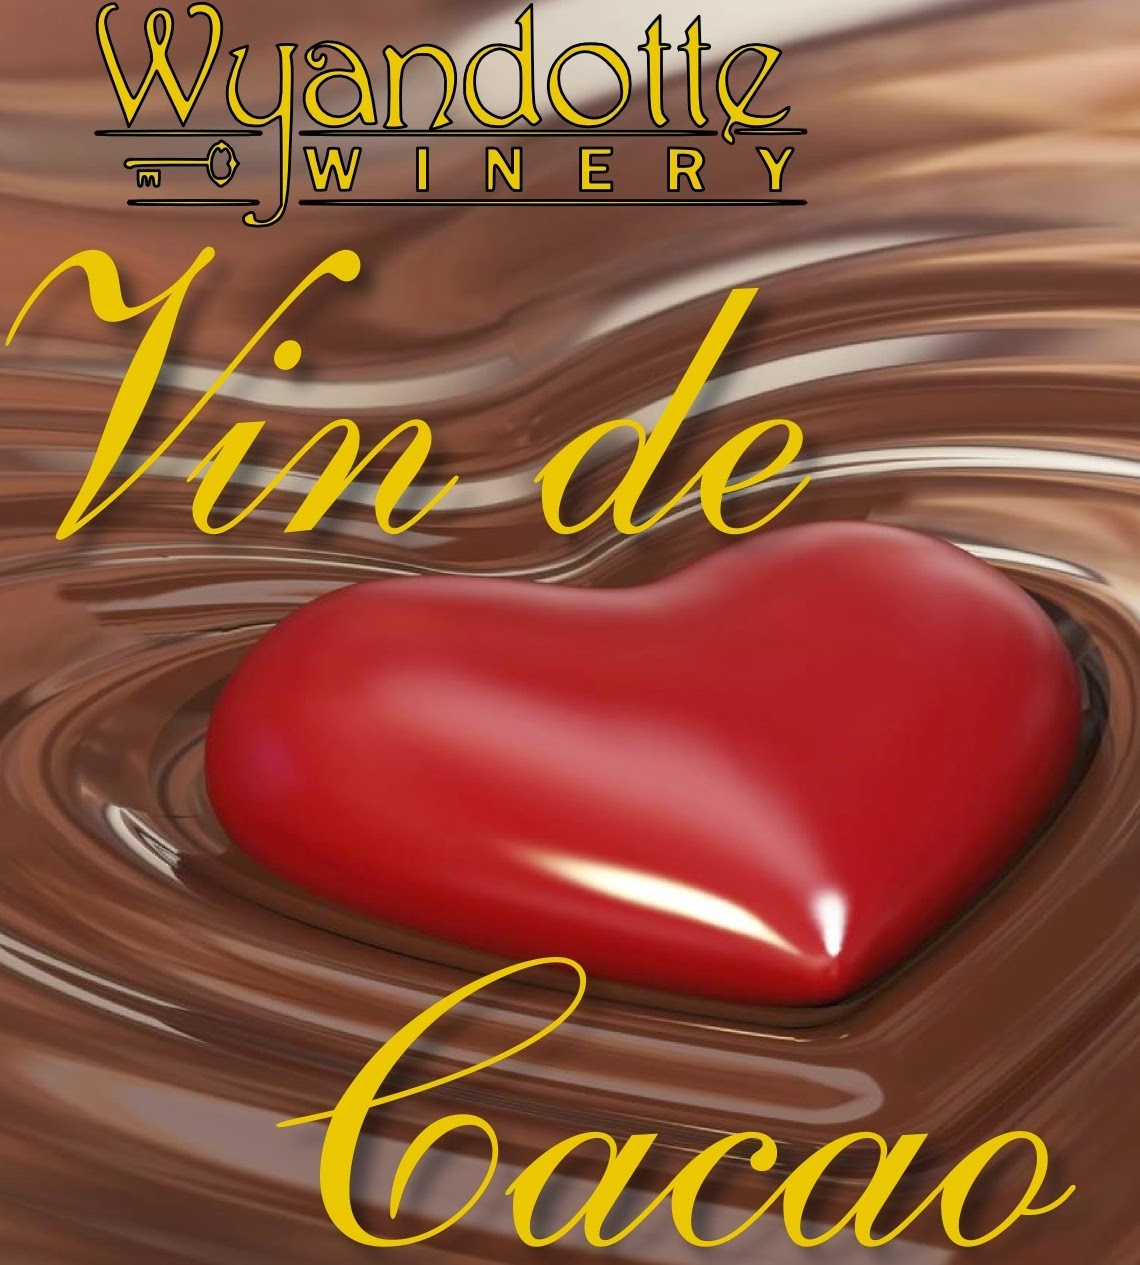 Vin de Cacao Chocolate Red Wine label